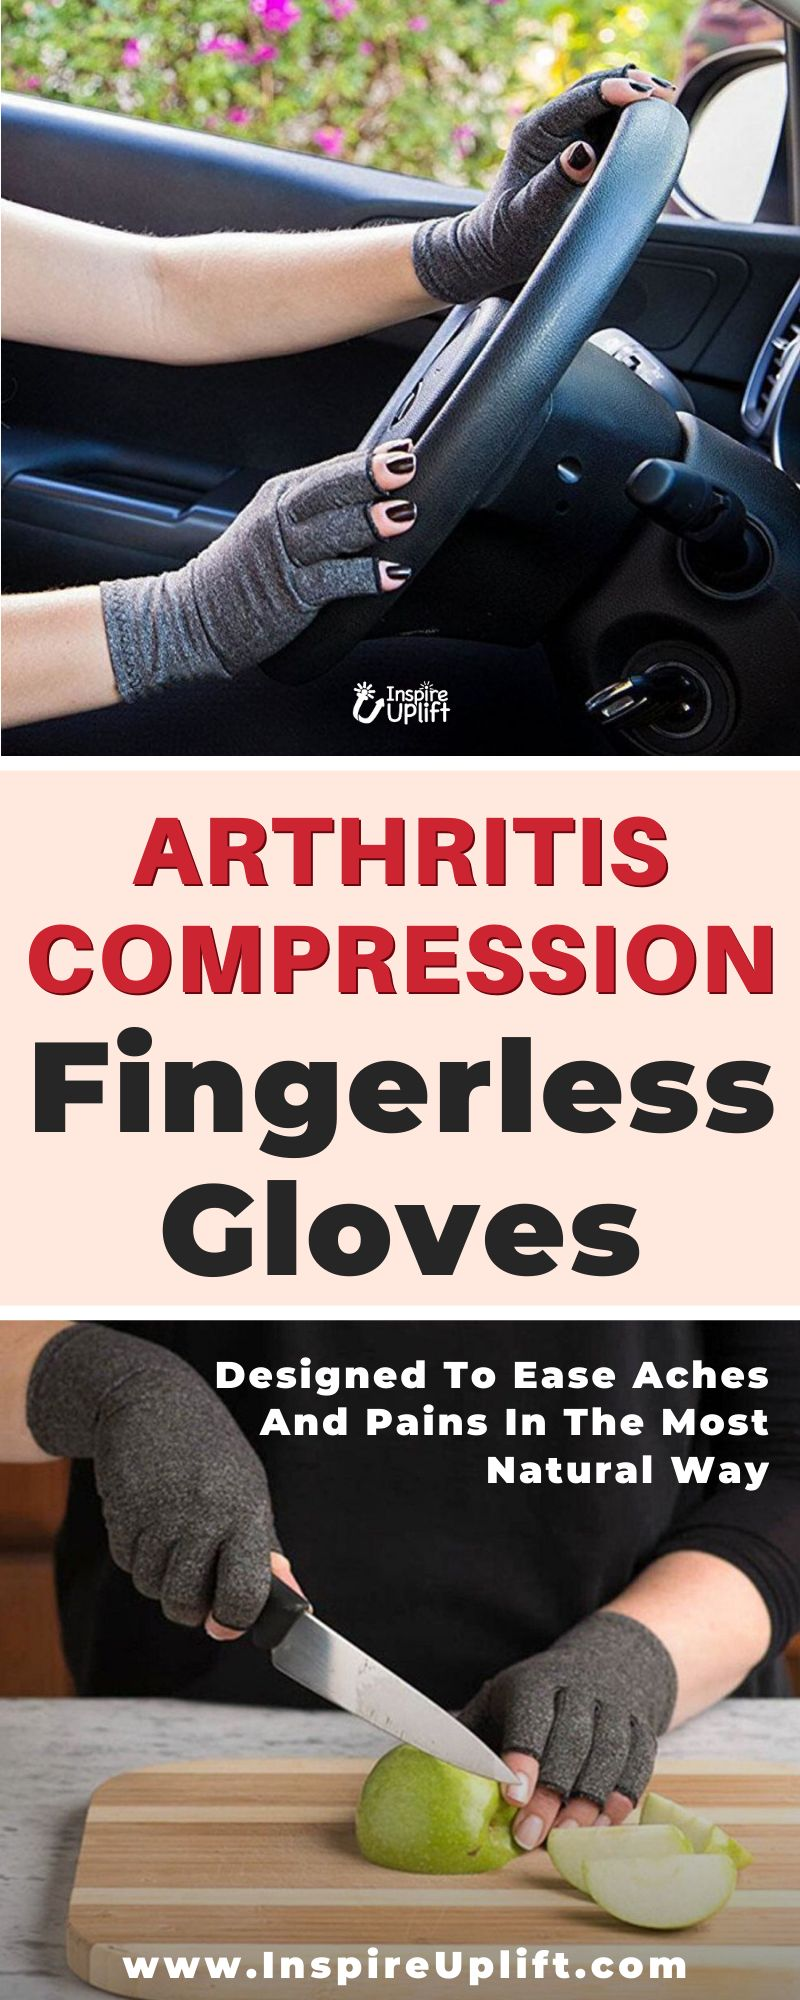 Made of high quality cotton spandex, these Arthritis Compression Fingerless Gloves ensure a comfortable fit and increased mobility all day long. The fingerless design facilitates holding onto things without hindering your every move. Run errands, clean the house, hold slippery items, text messages, work on your computer, cook dinner or even walk the dog!